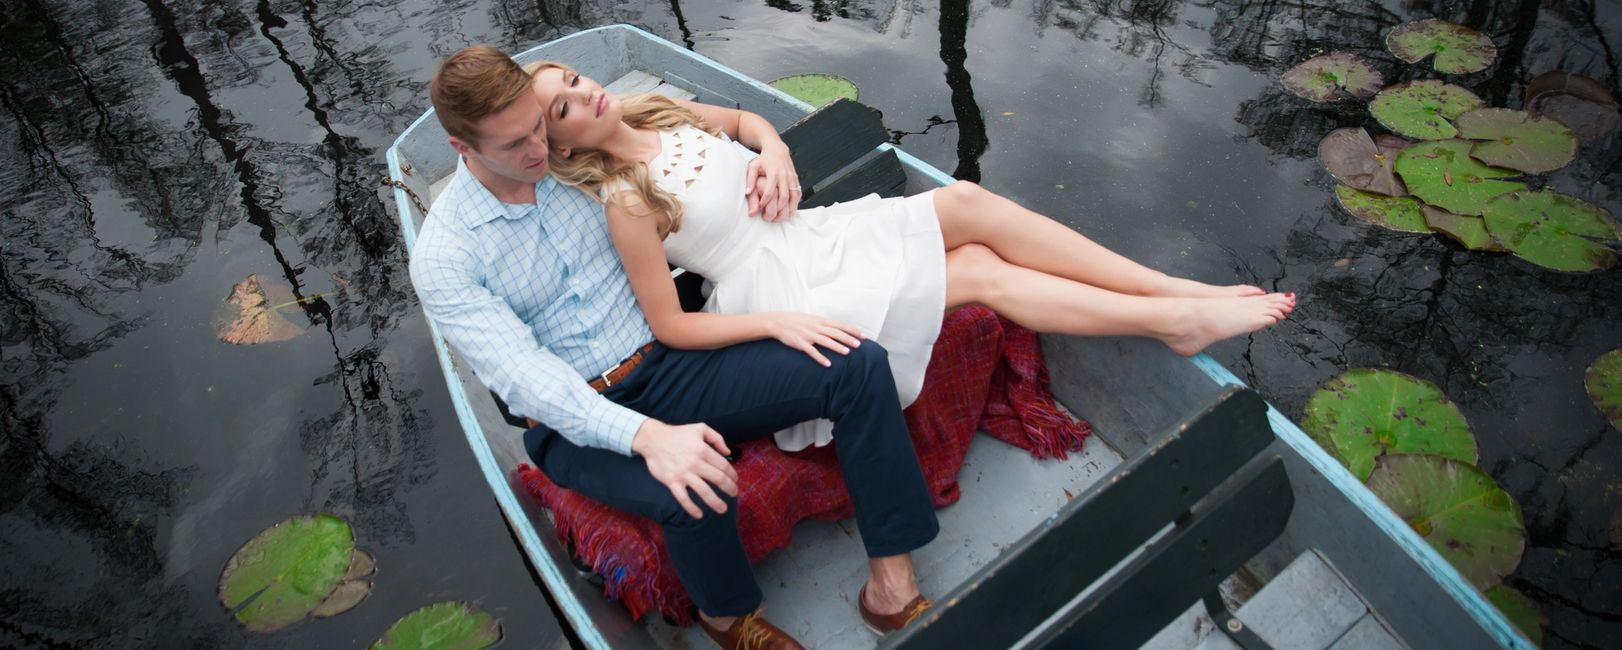 Welcome to Jason Cole Photography - Young couple in love in a small boat among trees, lily pads.